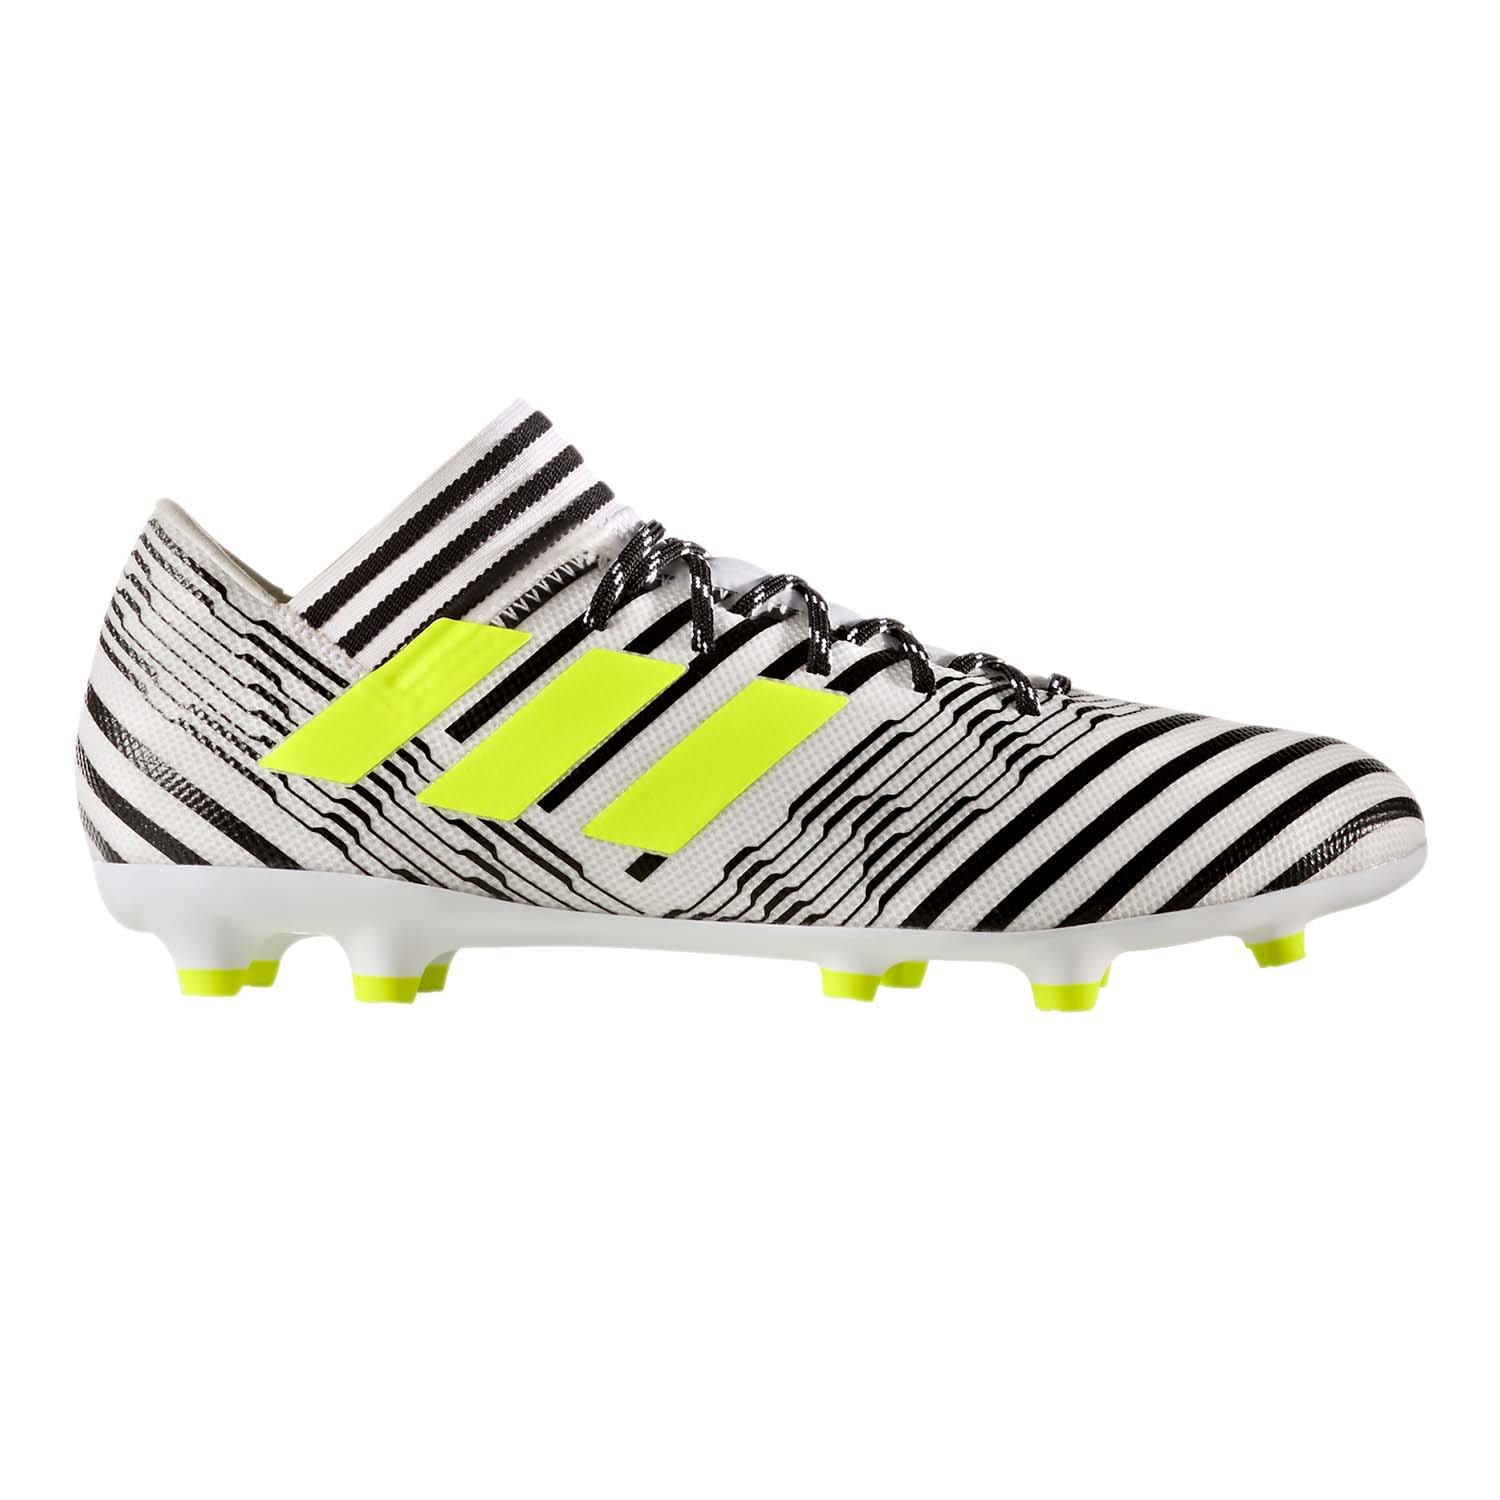 adidas Men's Nemeziz 17.3 Firm Ground Cleats Soccer Shoe, White/Solar Yellow/Black, (11.5 M US)